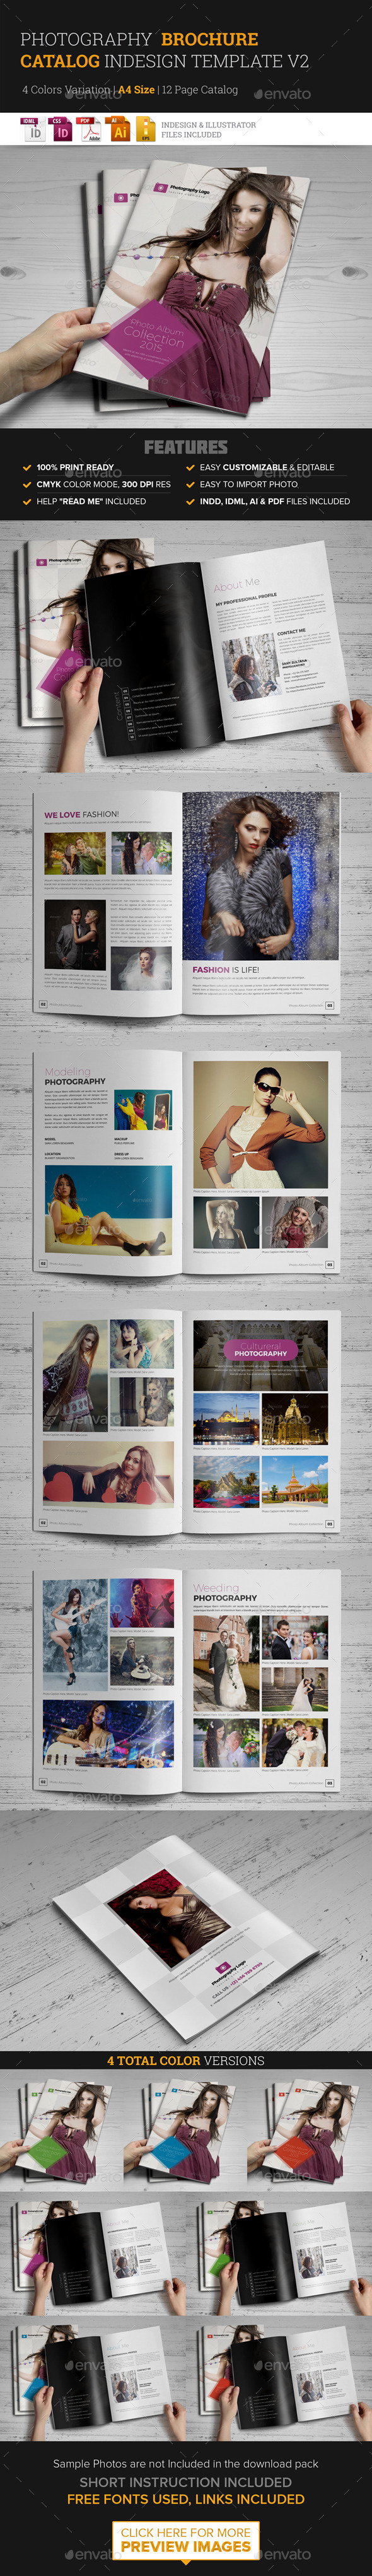 Photography Brochure Catalog InDesign Template v2